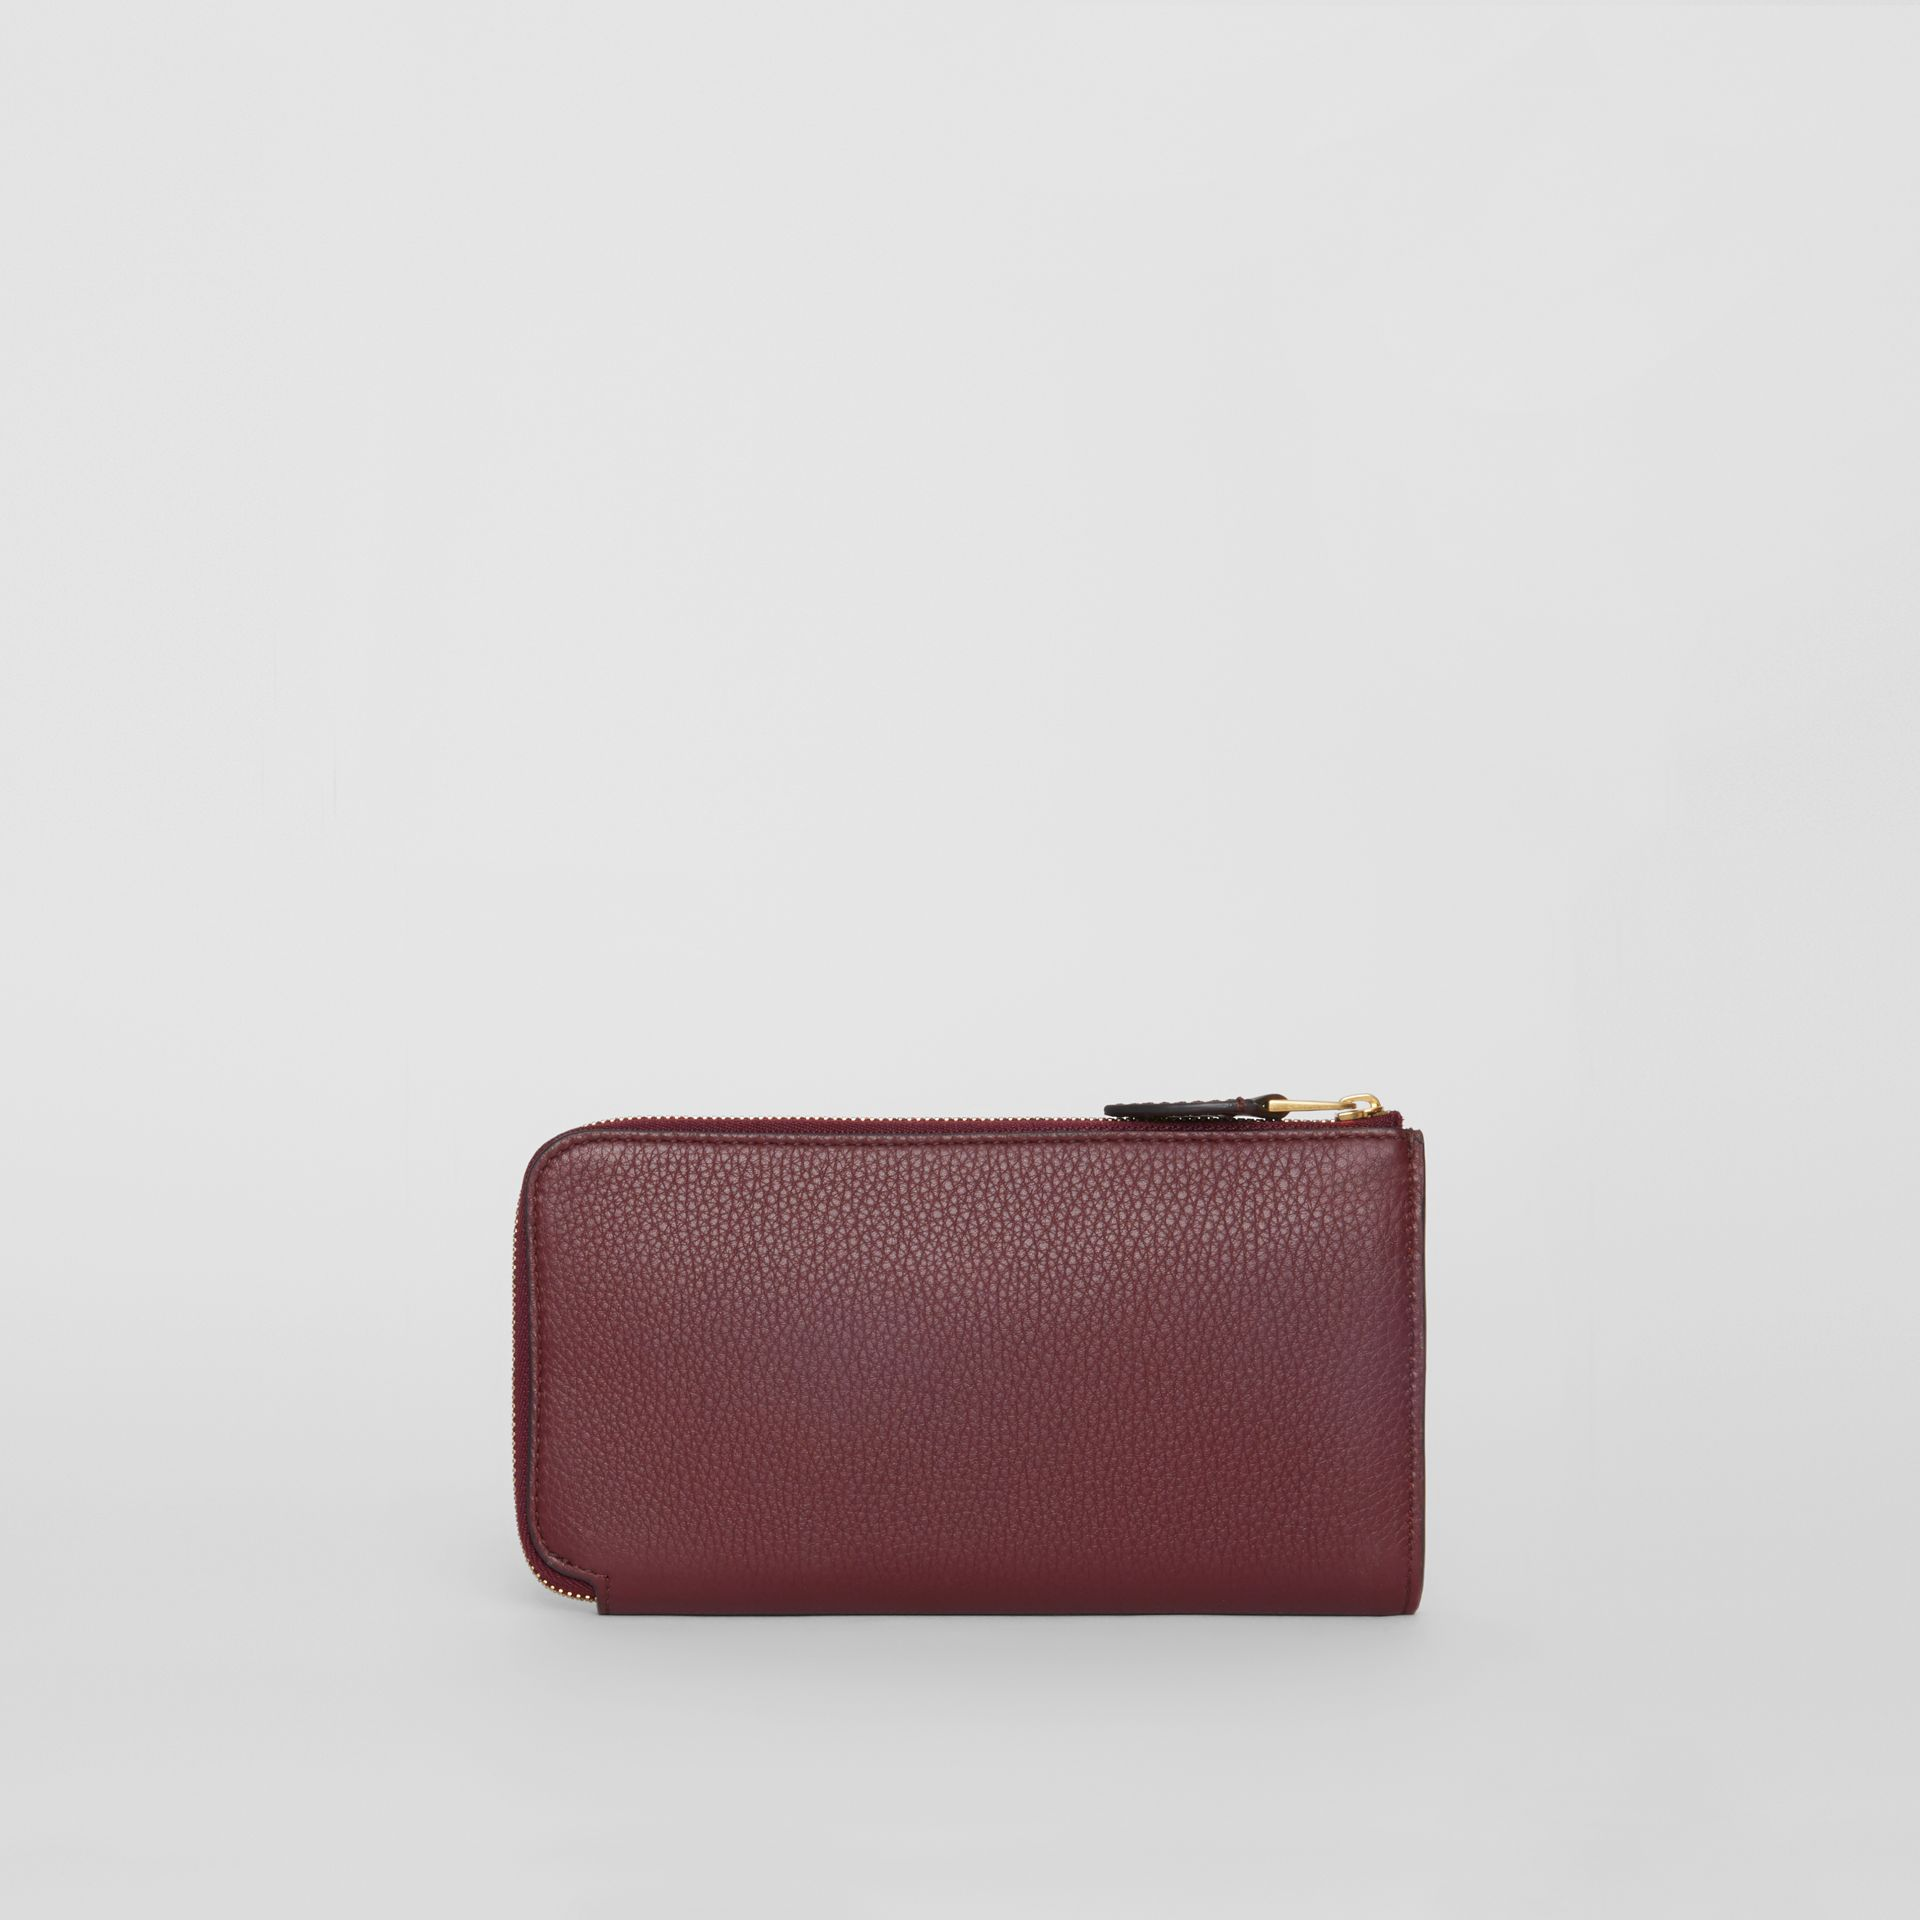 Two-tone Leather Ziparound Wallet and Coin Case in Deep Claret - Women | Burberry - gallery image 5